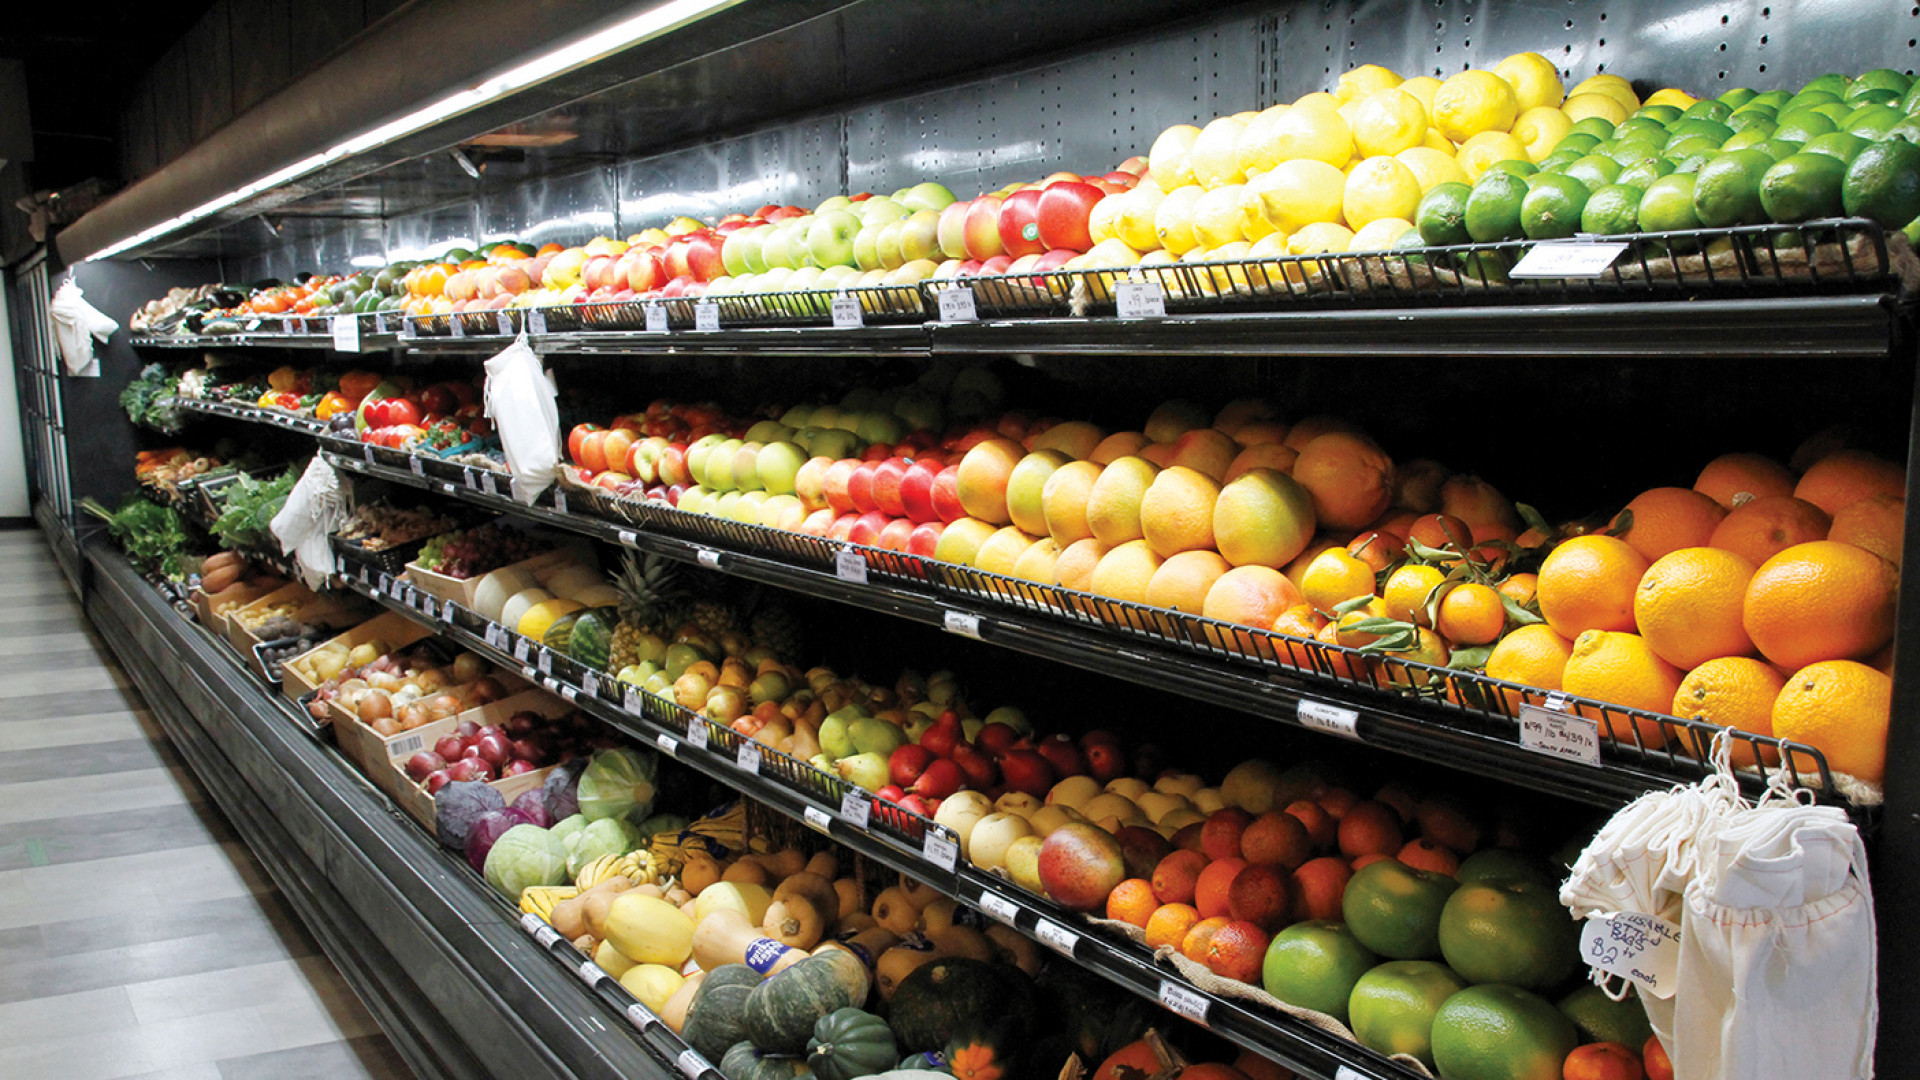 Things to do in Toronto | Produce is sold loose at Unboxed Market